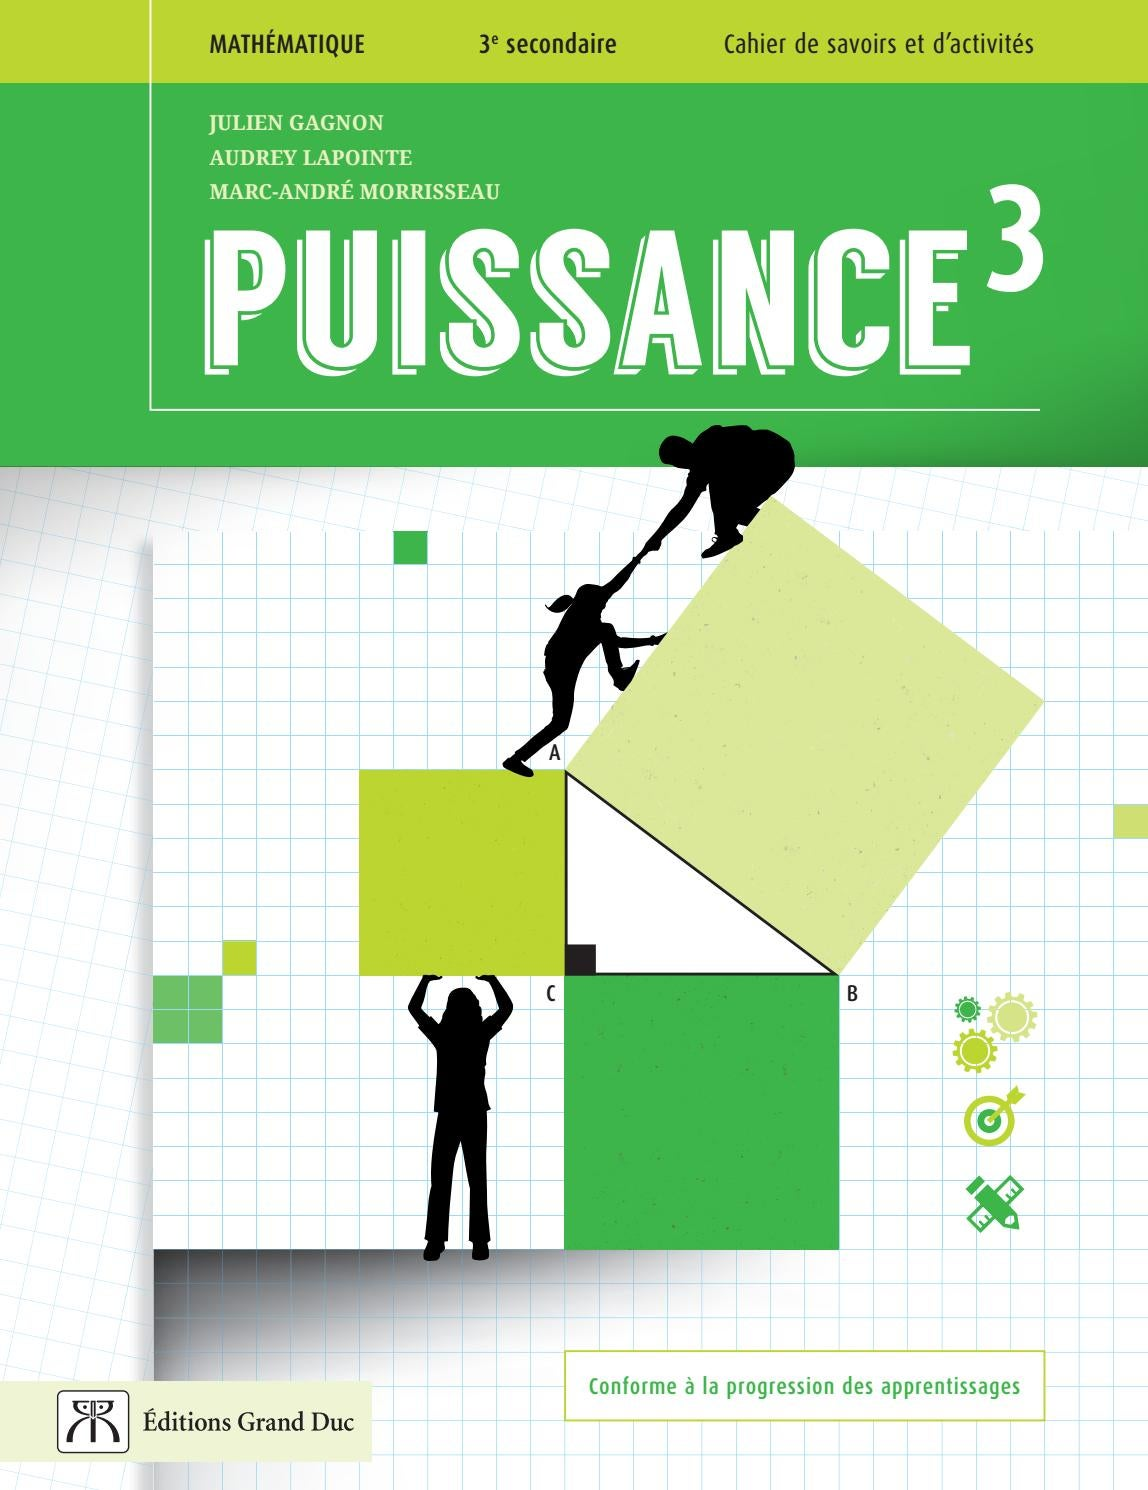 Puissance3 cahier extrait by Éditions Grand Duc issuu